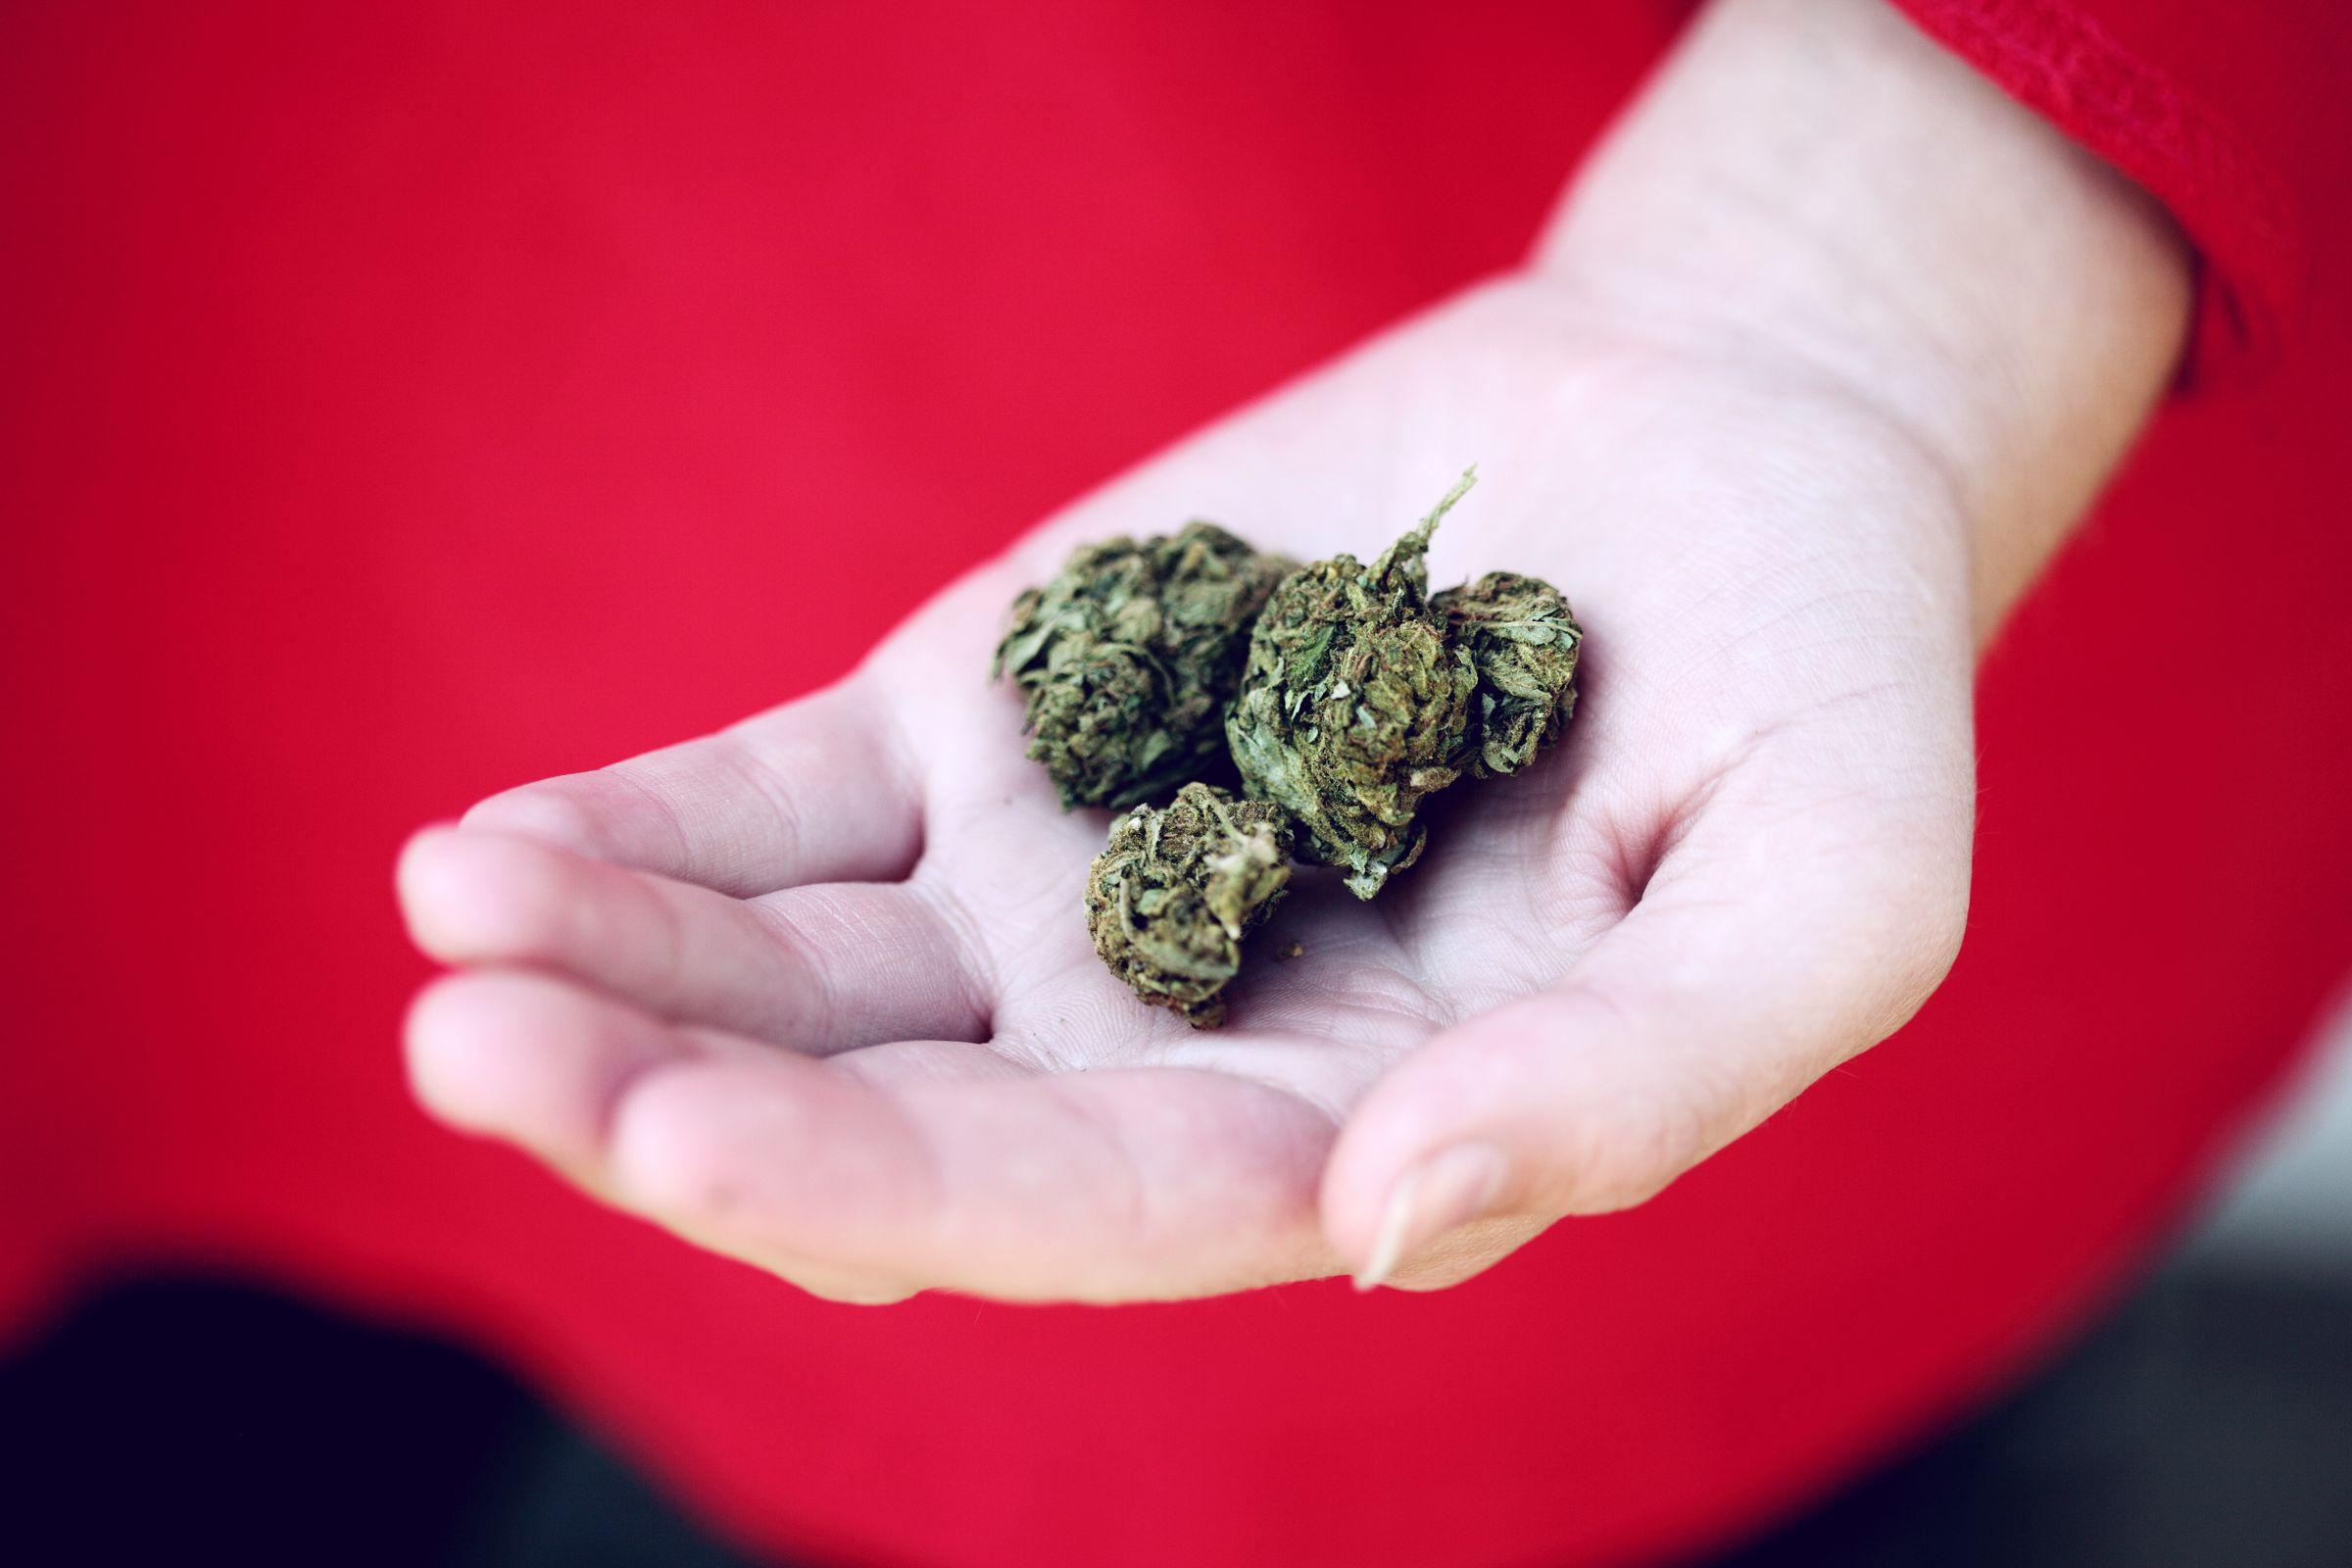 How Many Cannabis Plants For Personal Use: ACT